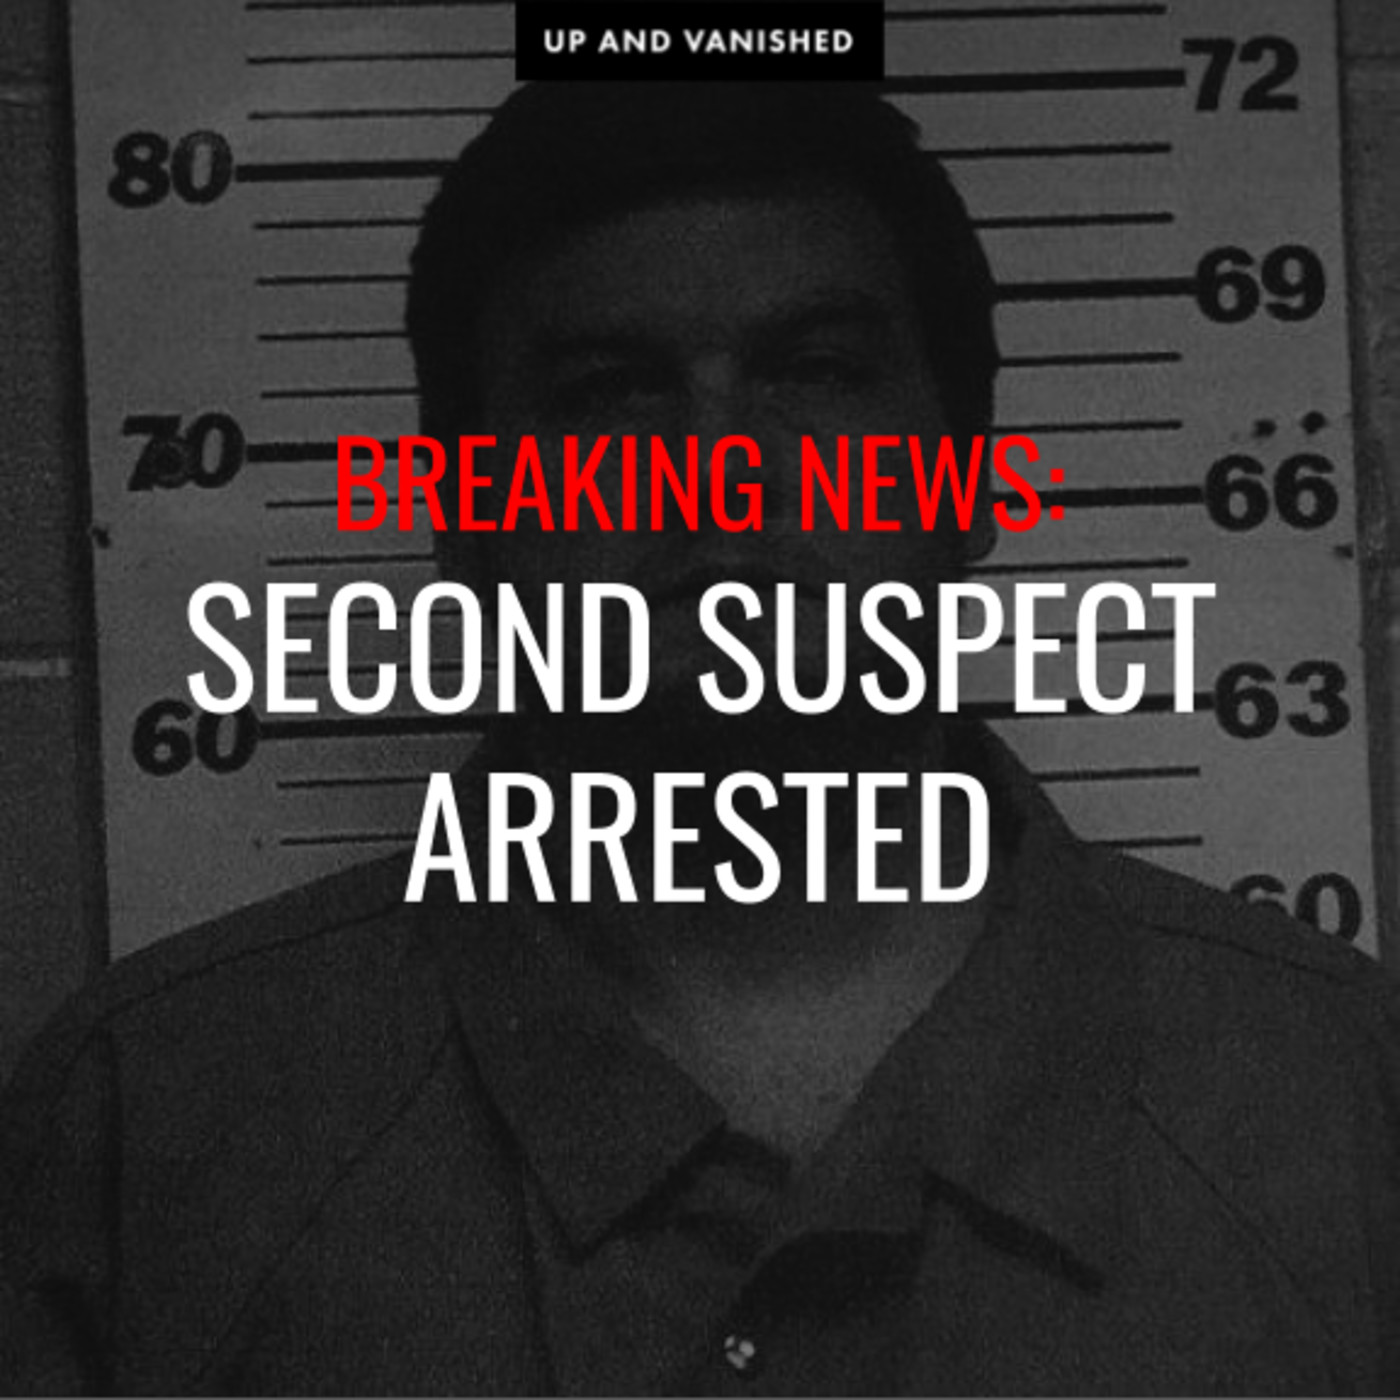 BREAKING NEWS: Second Suspect Arrested